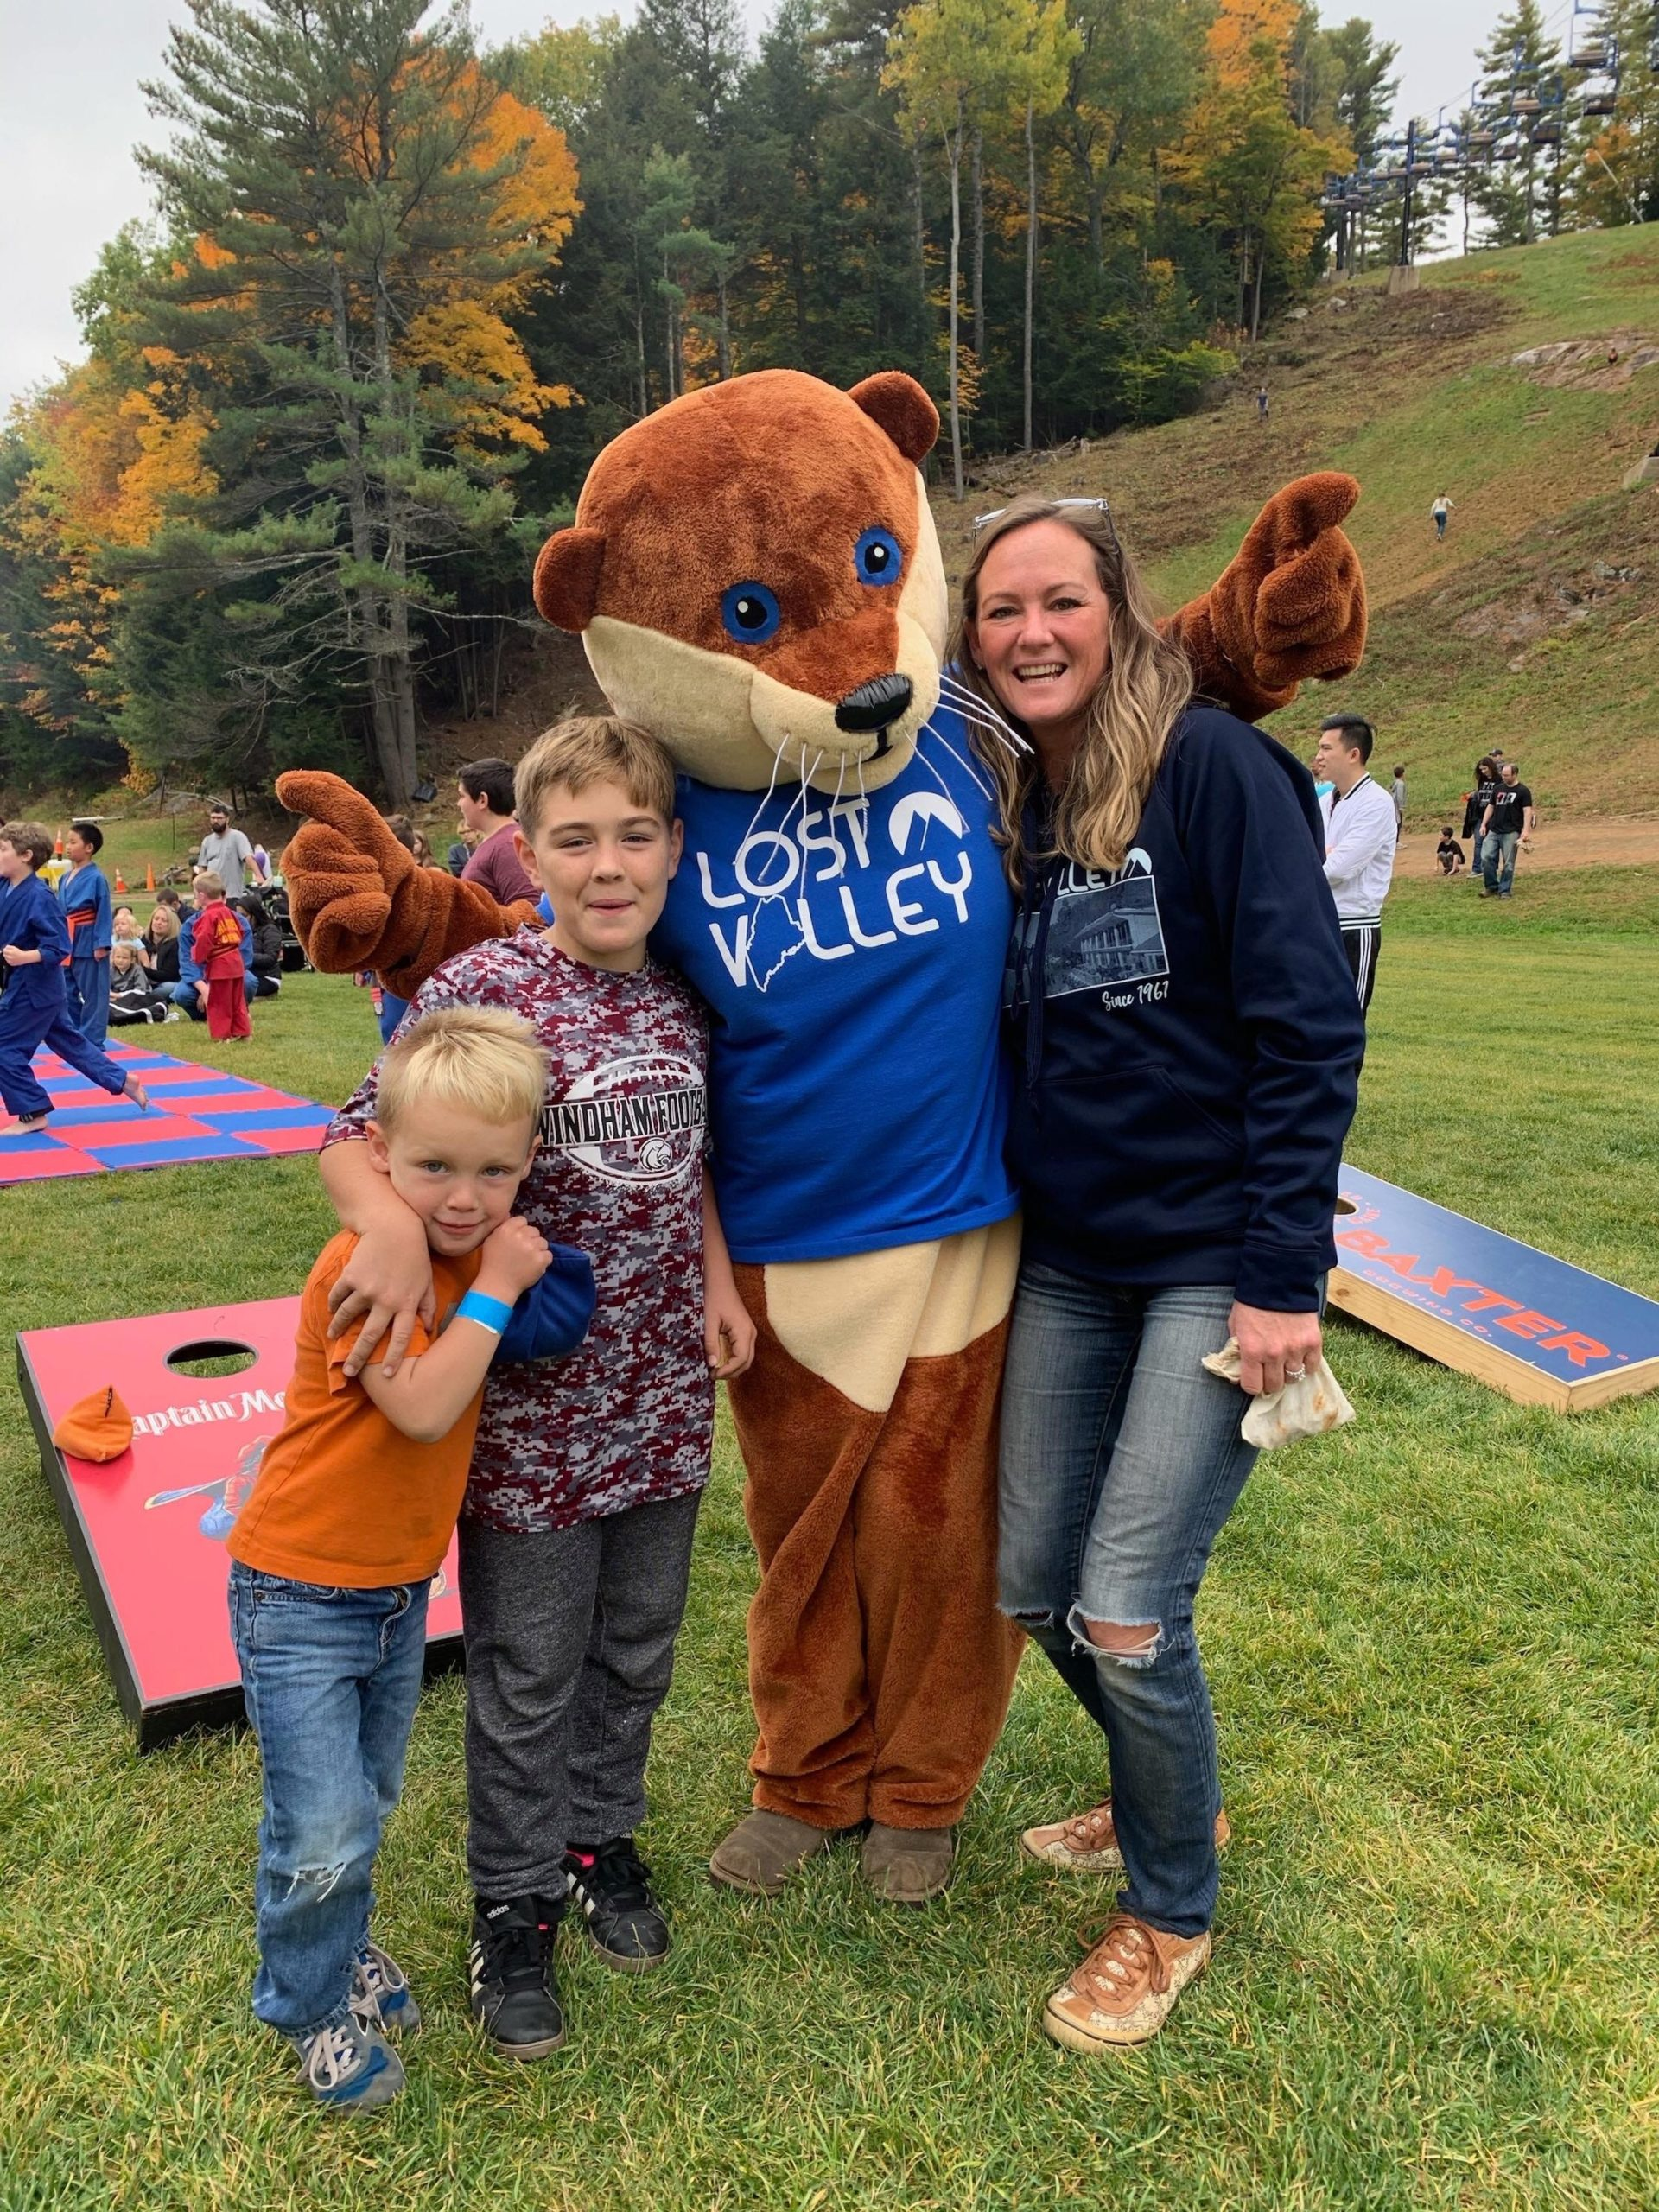 family fall festival at Lost Valley